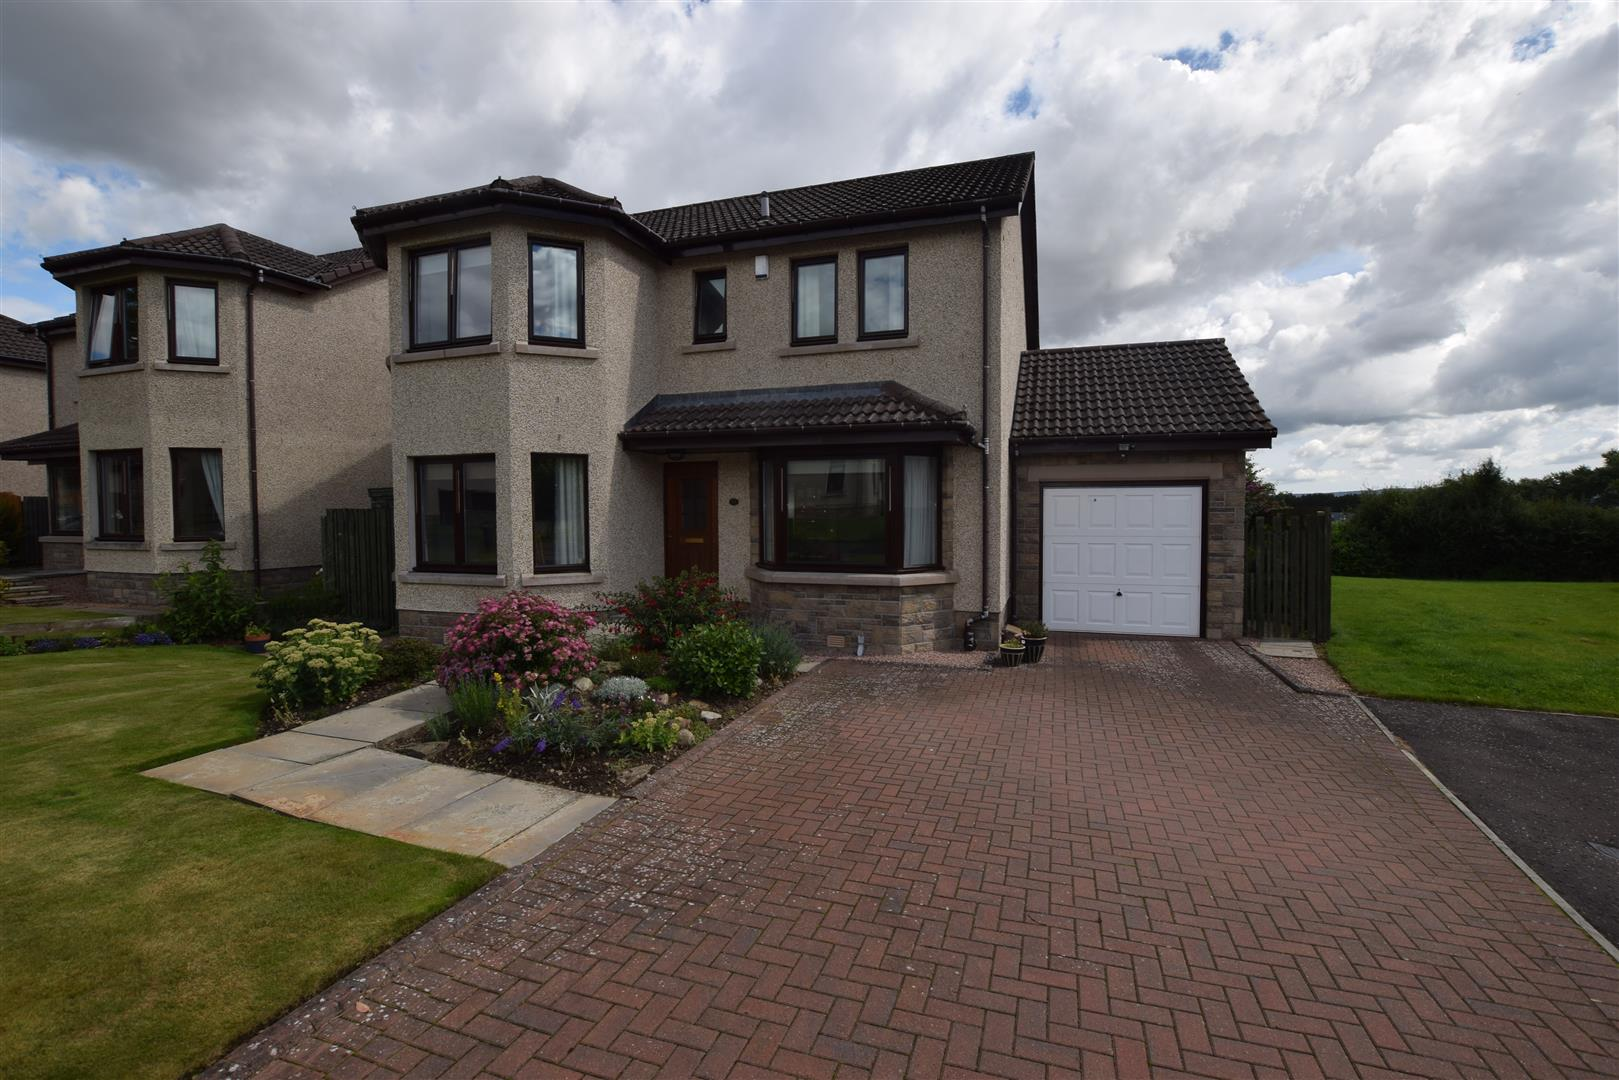 15, Birch Avenue, Blairgowrie, Perthshire, PH10 6XE, UK